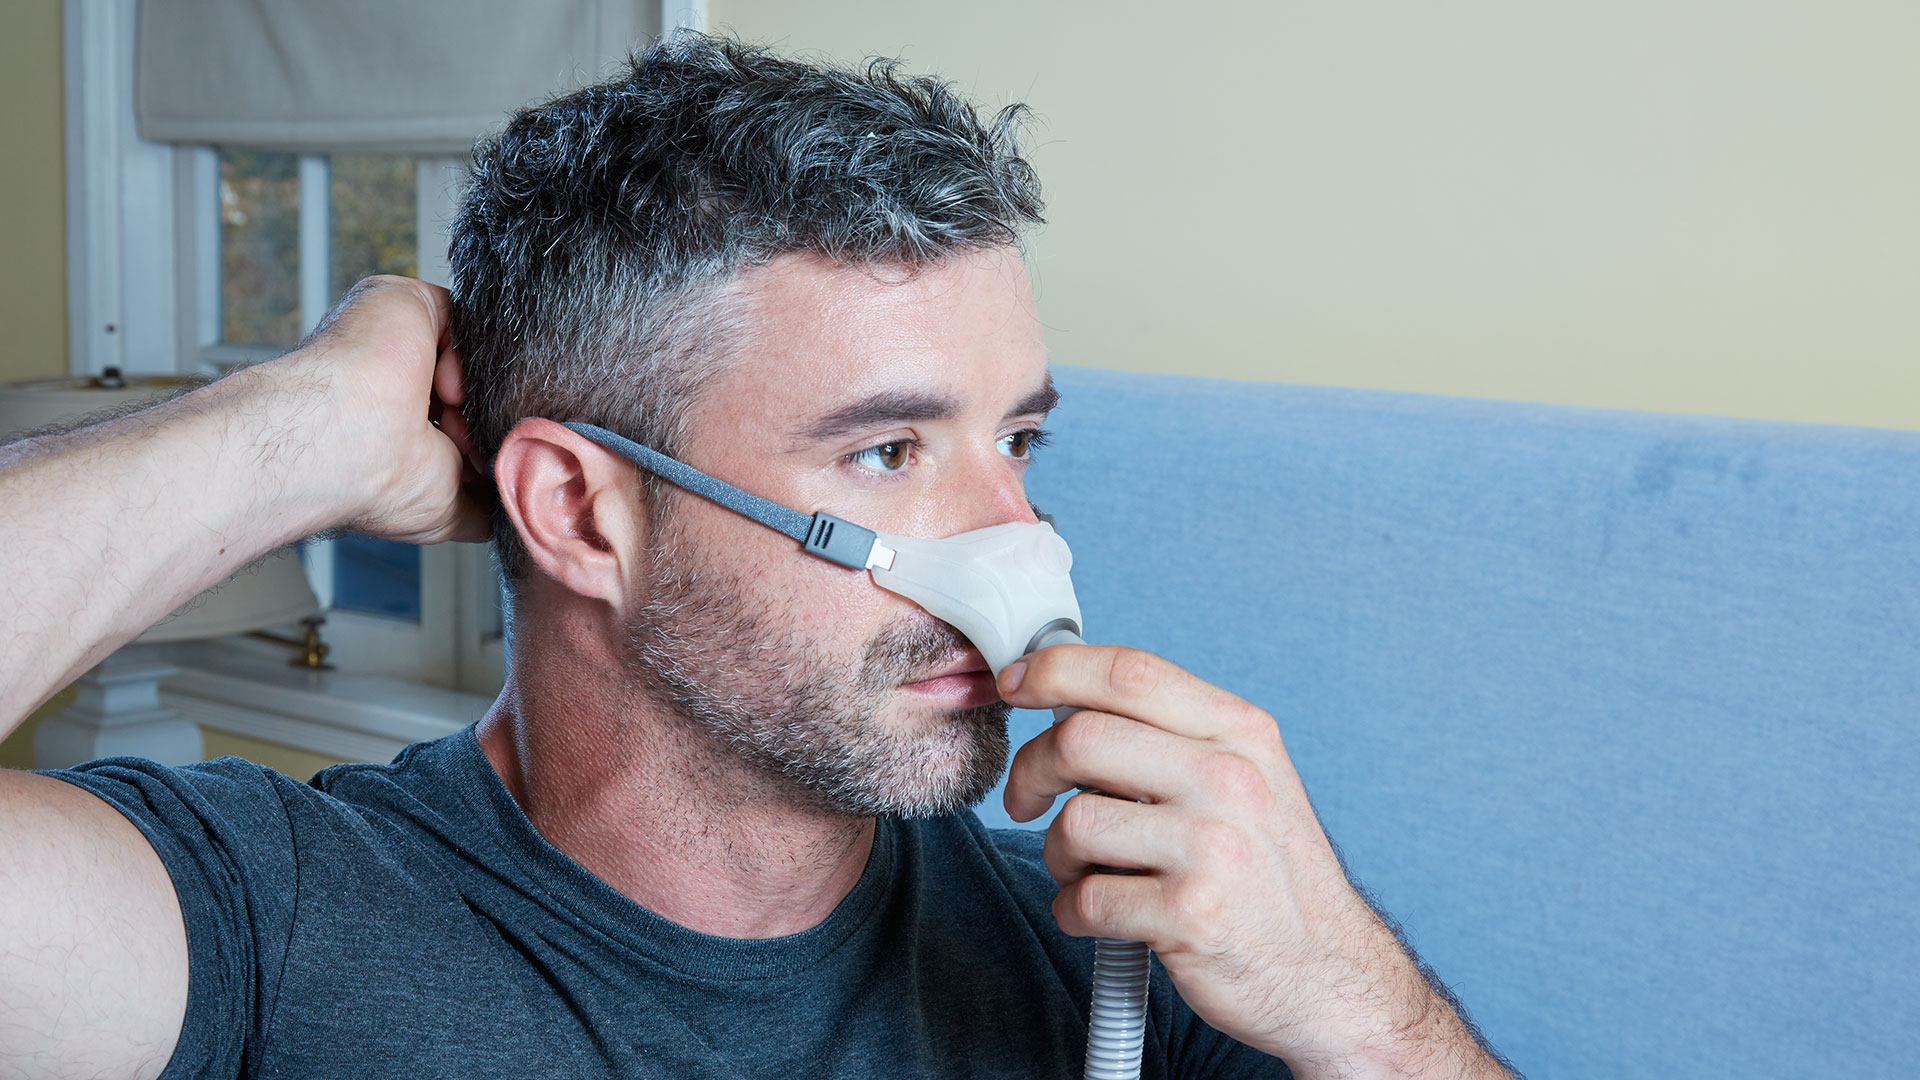 Metamason Nabs $3M for World's First 3D Printed CPAP Masks